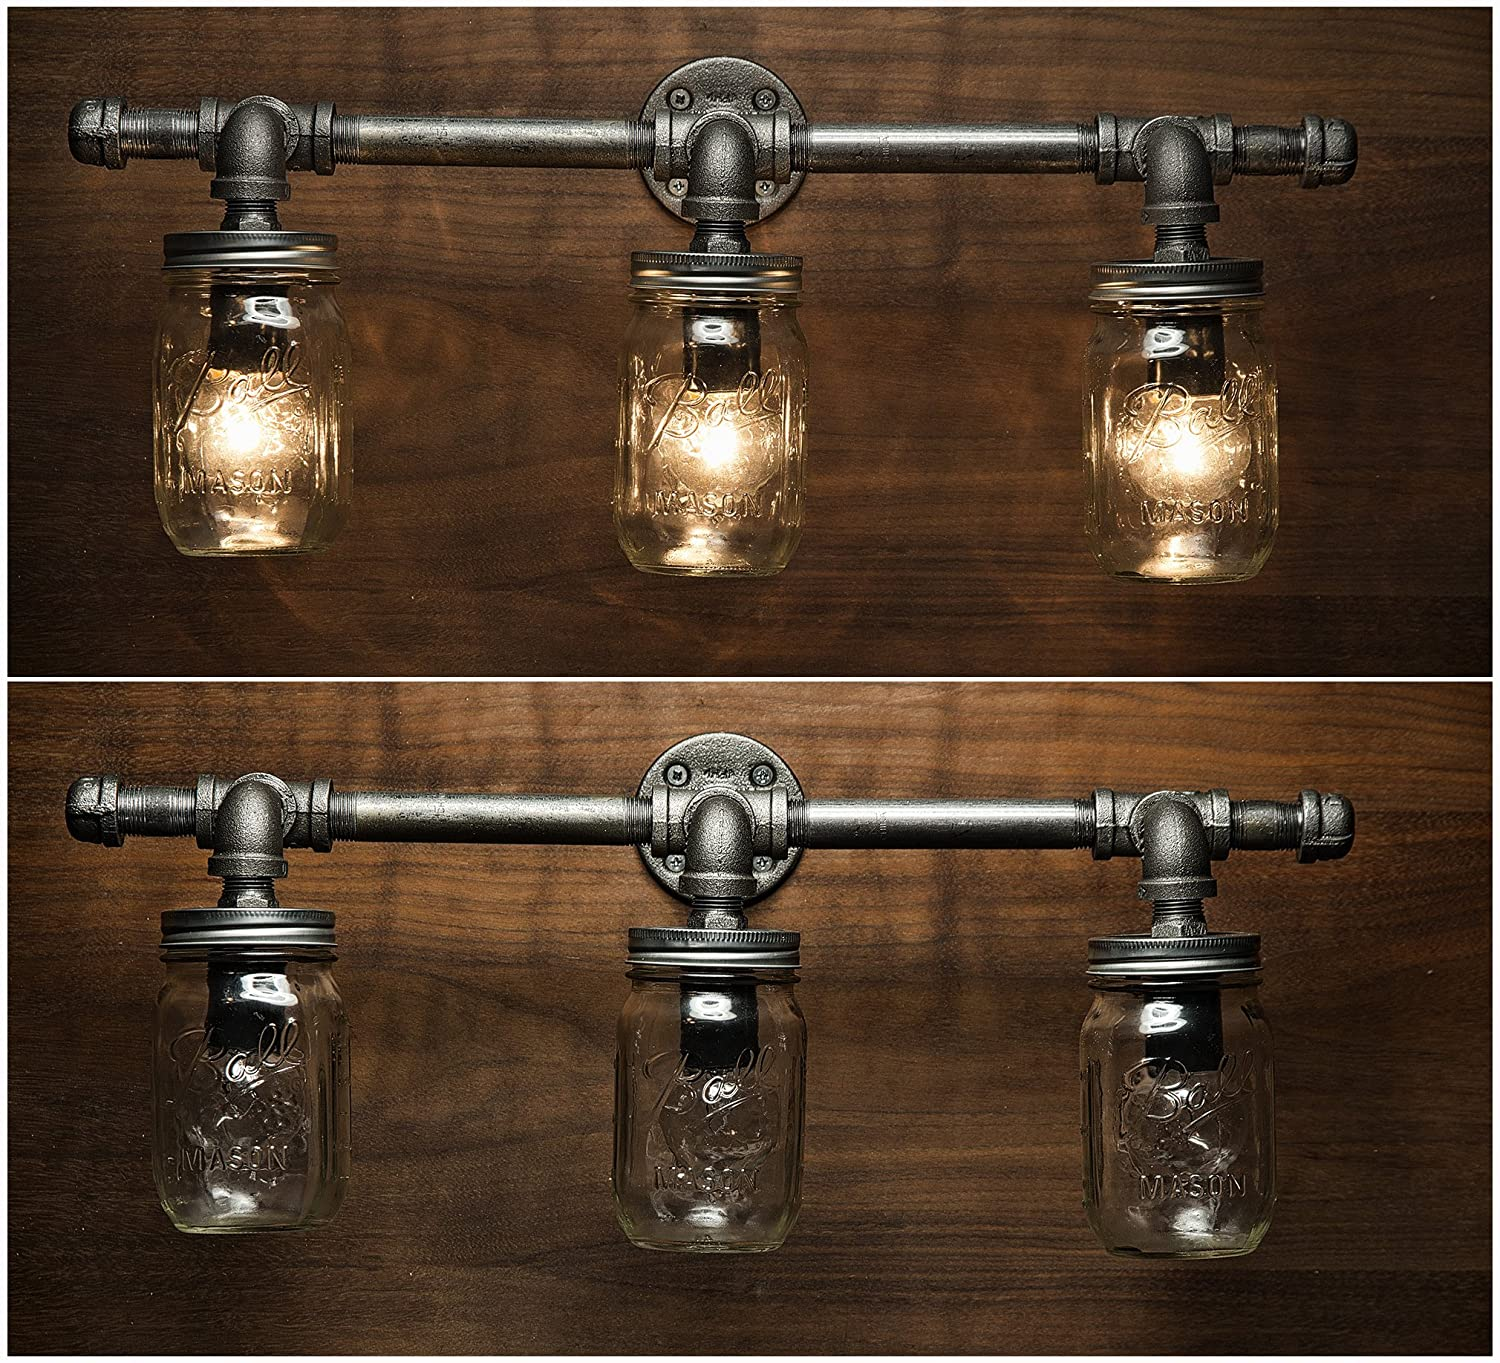 diy pipe lighting. Amazon.com: 3 Mason Jar Light - Pipe Vanity Edison Rustic Industrial Wall Sconce Steampunk Light: Diy Lighting E